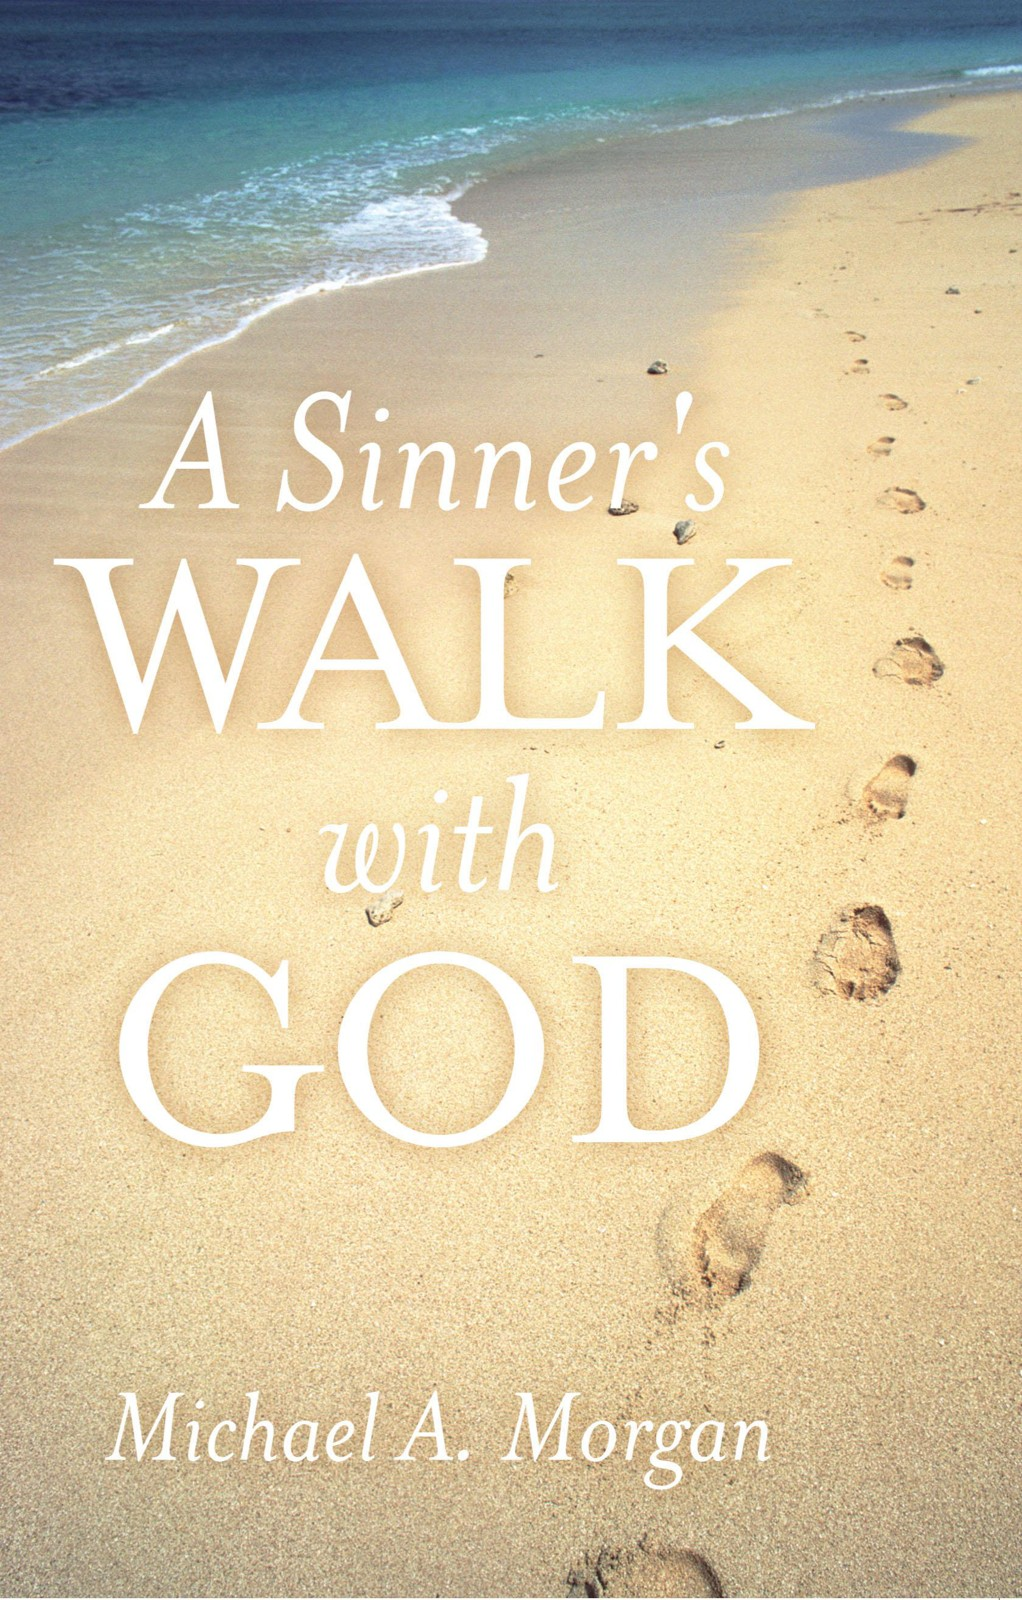 A Sinner's Walk with God